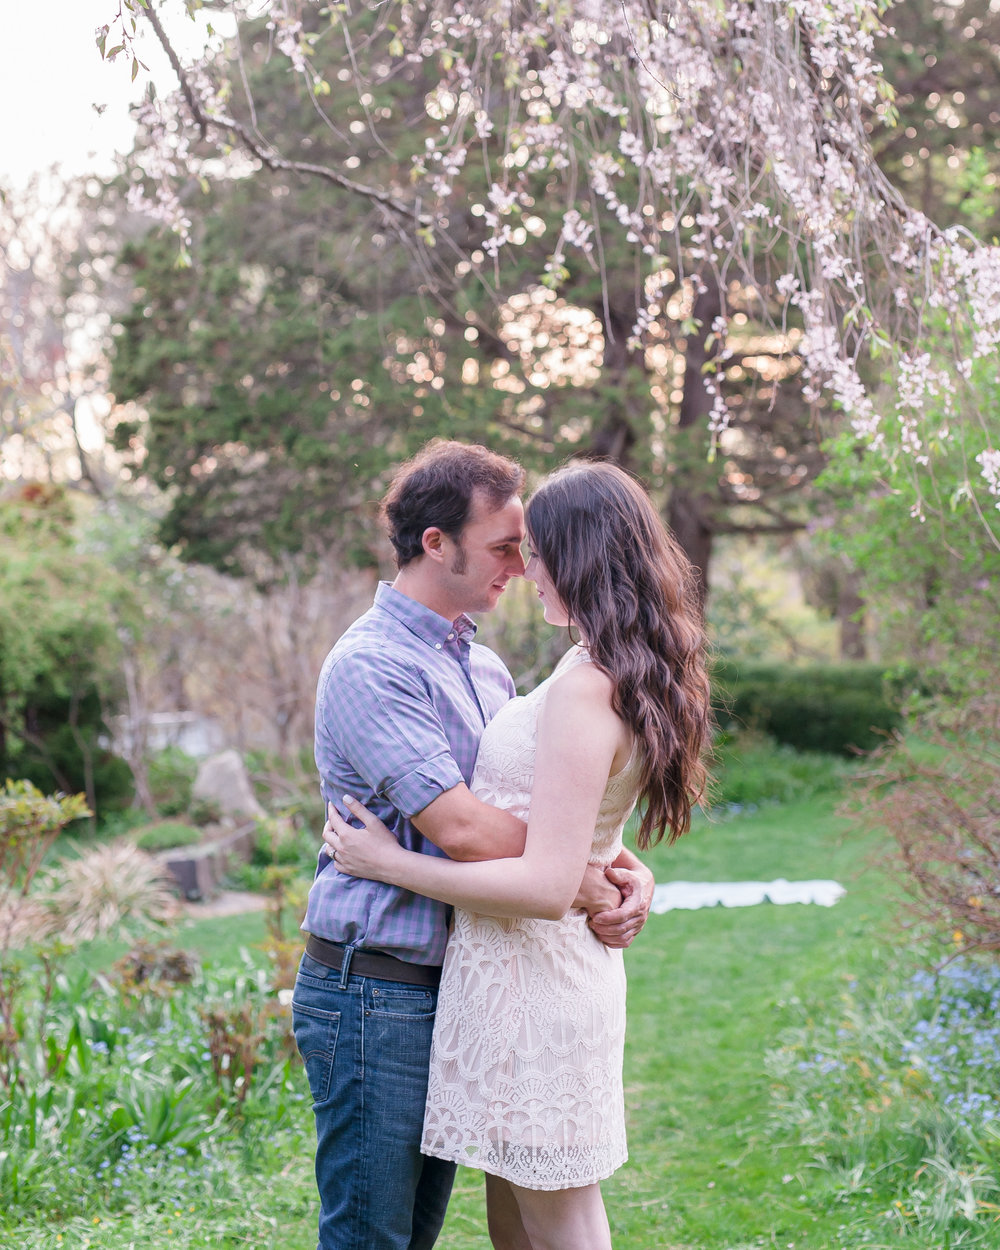 Sean and Nicole Beverly spring blossom engagement-40.jpg